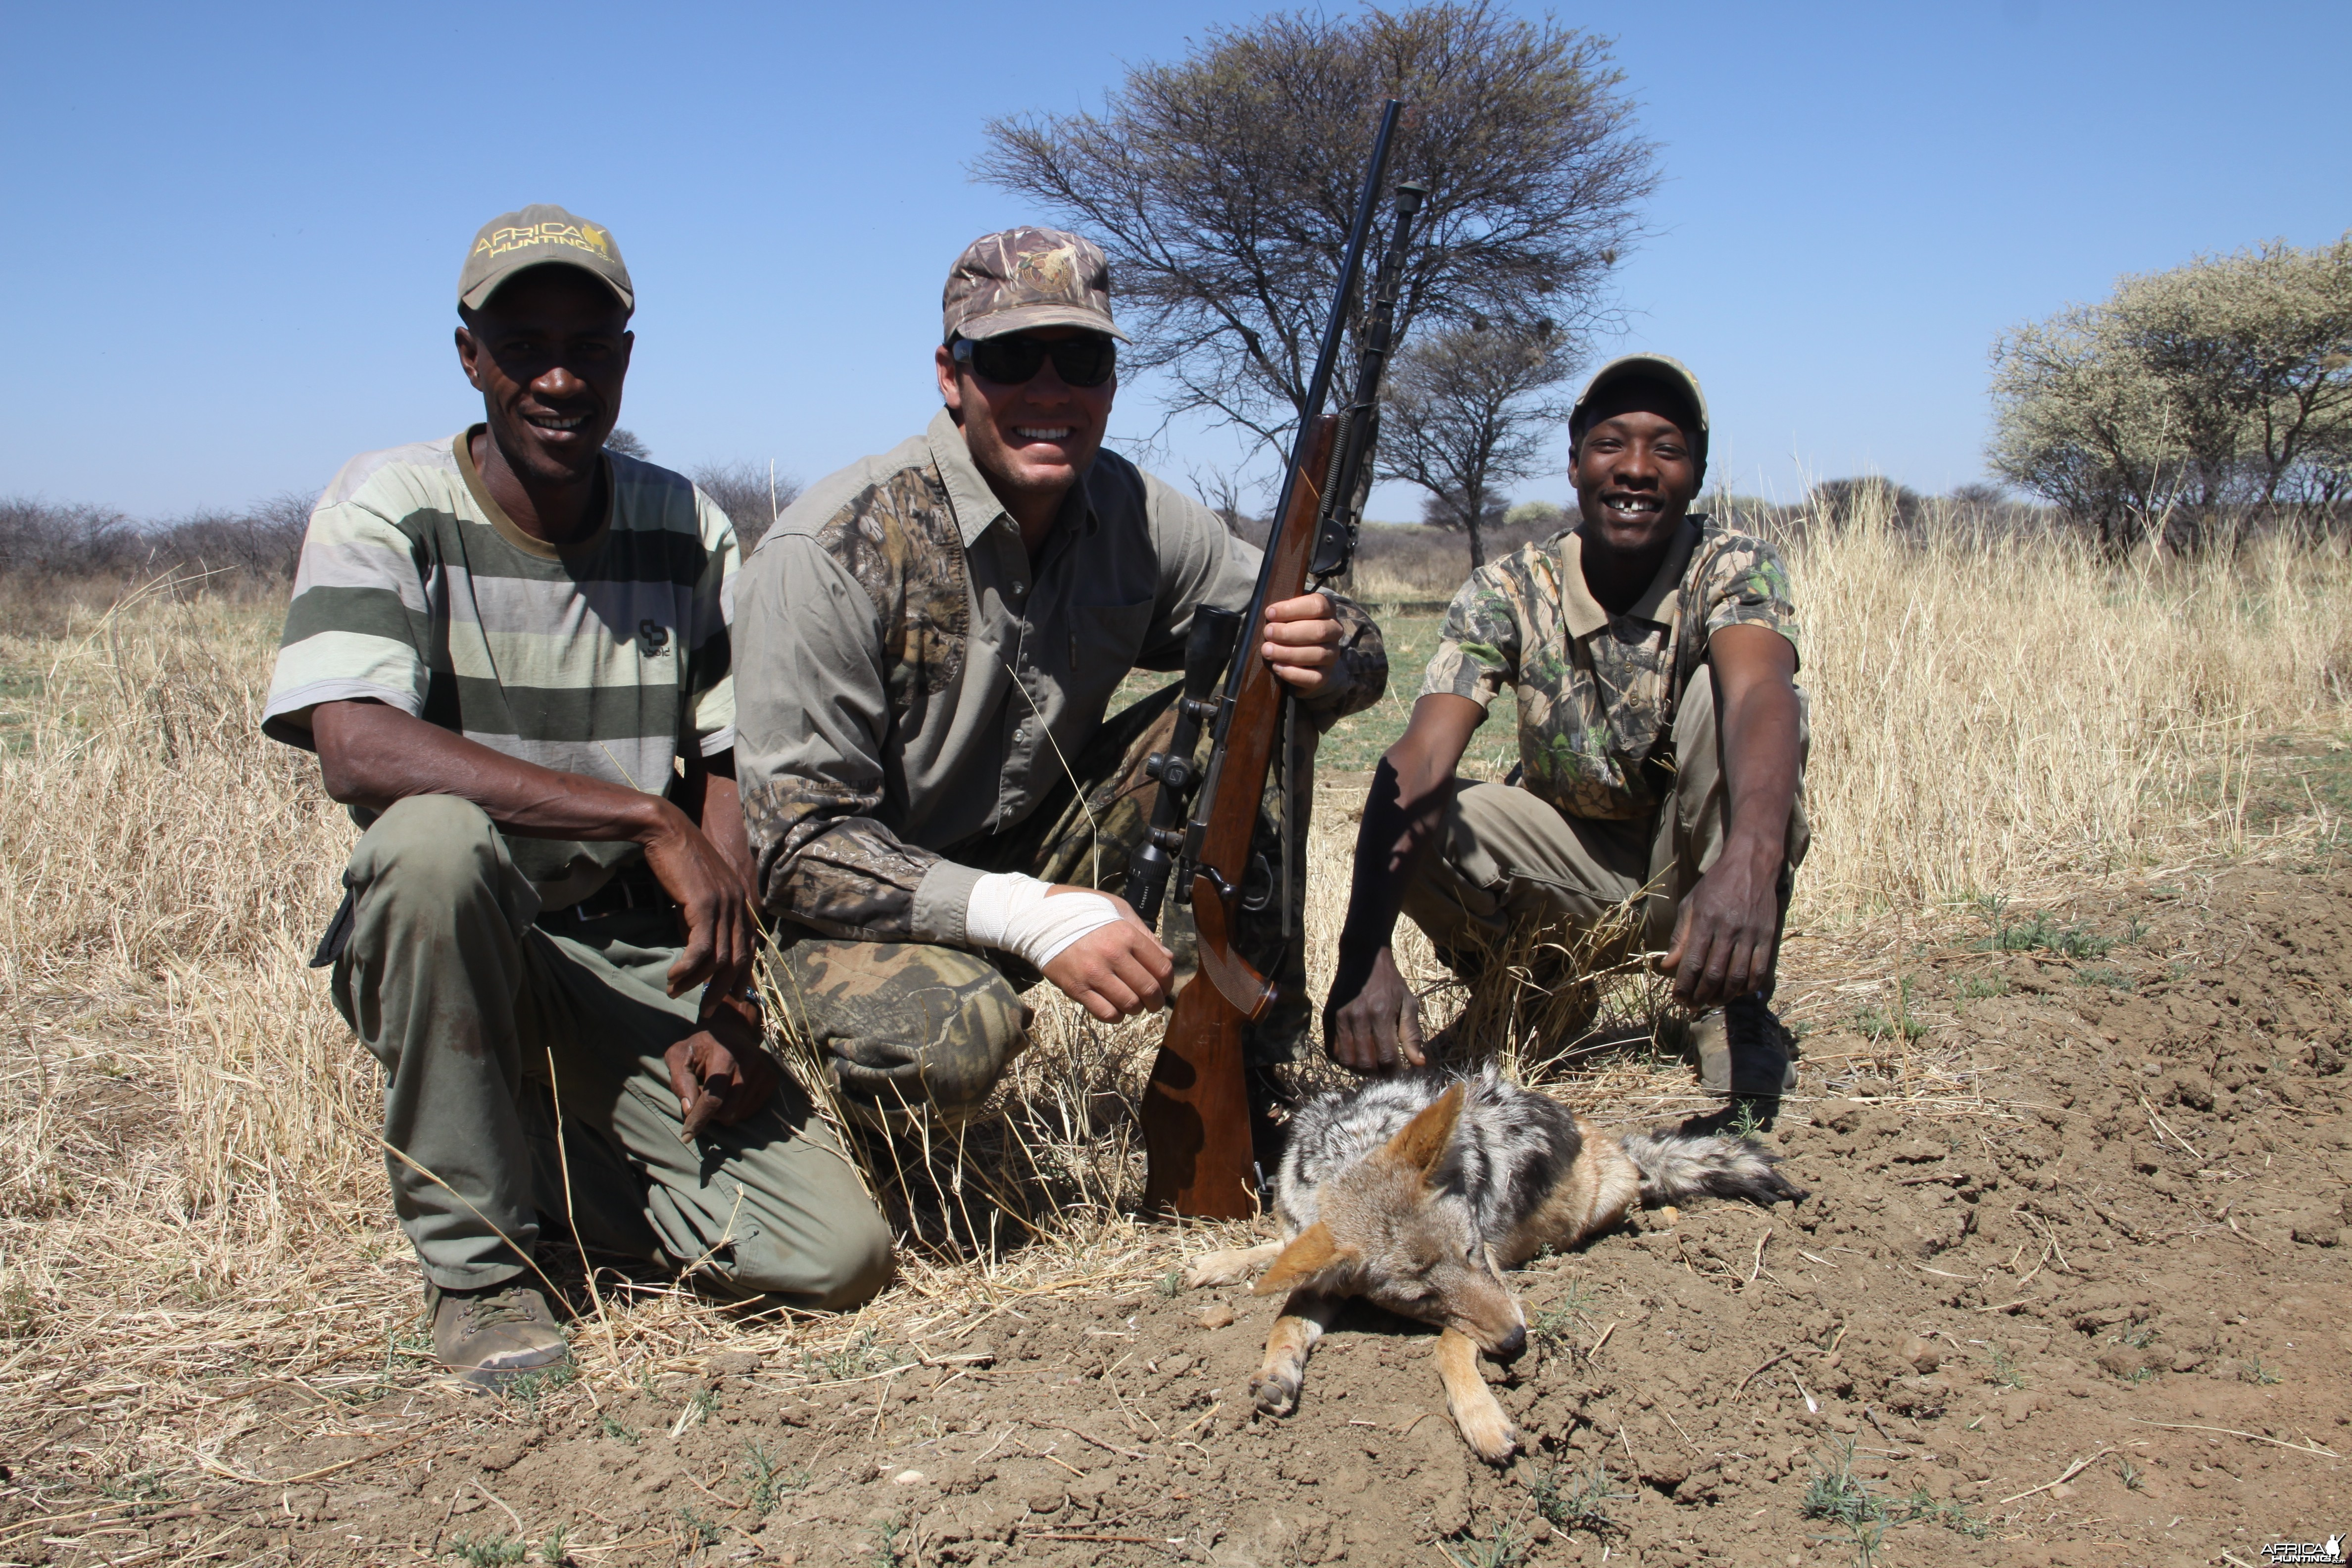 Jackal hunted with Ozondjahe Hunting Safaris in Namibia